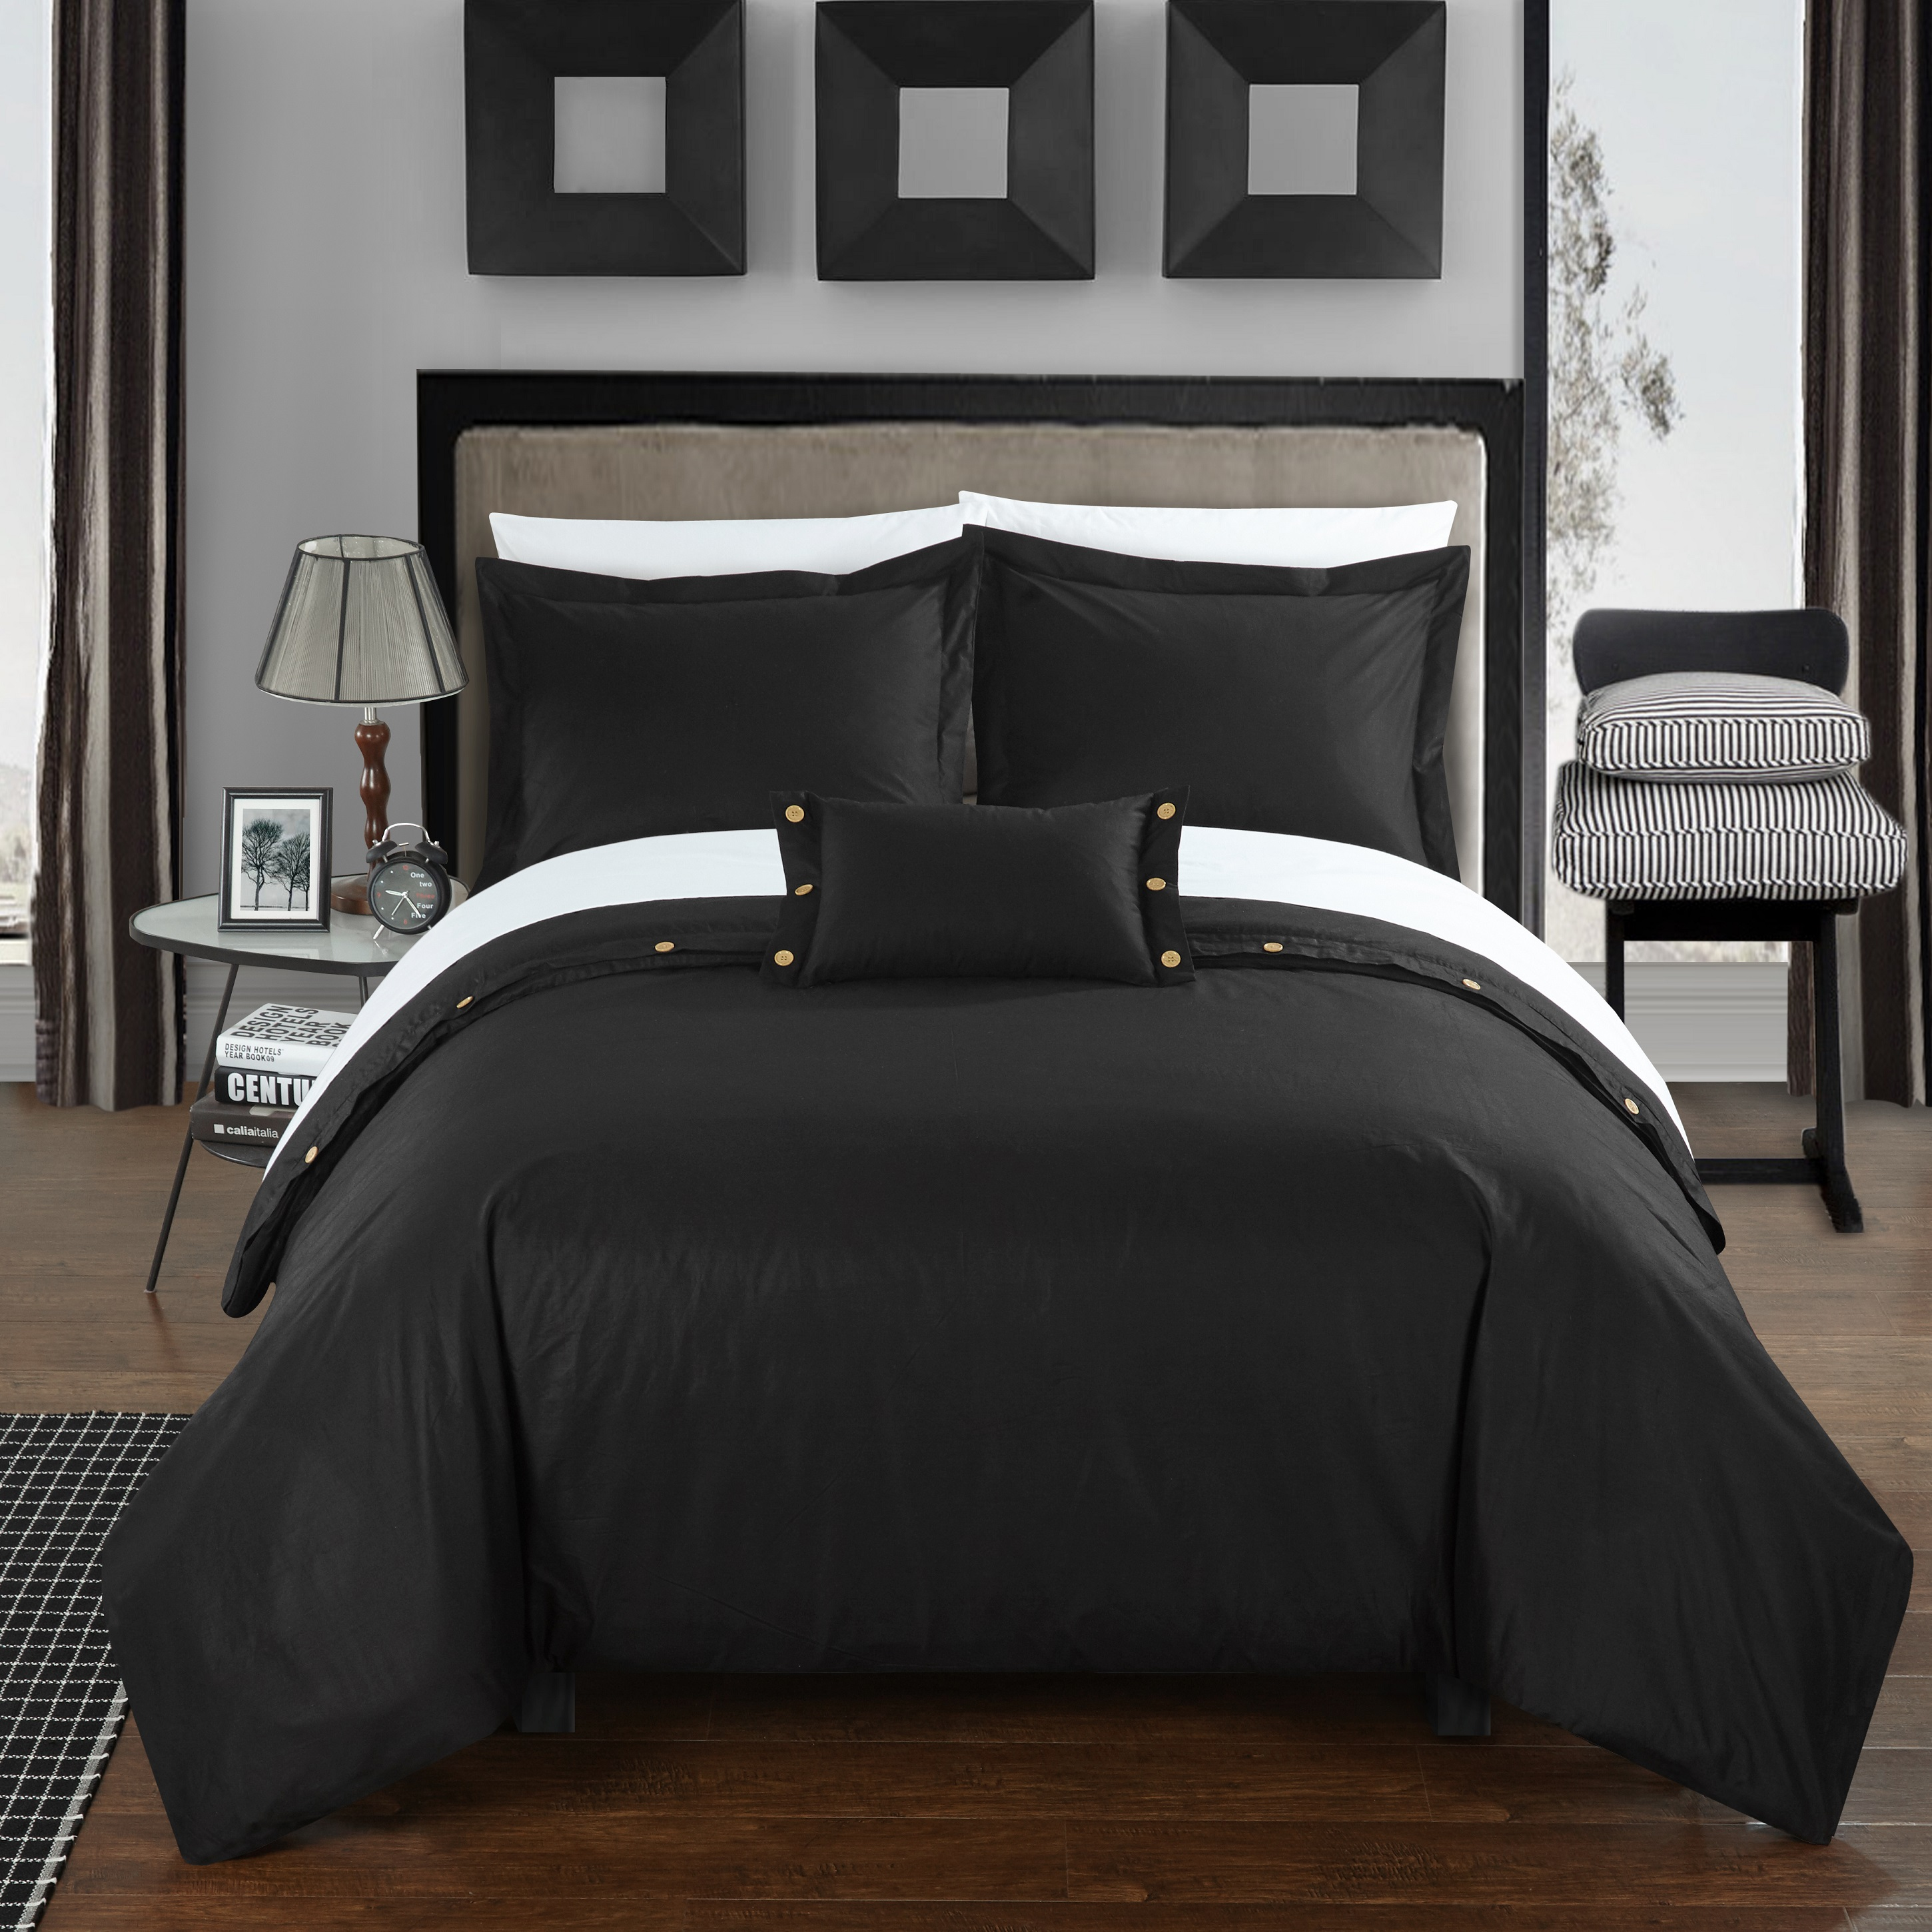 Chic Home 8-Piece Astrid 200 Thread Count COMBED FINISH 100% Cotton Twill Weave Decorative Button Closure Detail Queen Bed In a Bag Duvet Set Black With sheet set